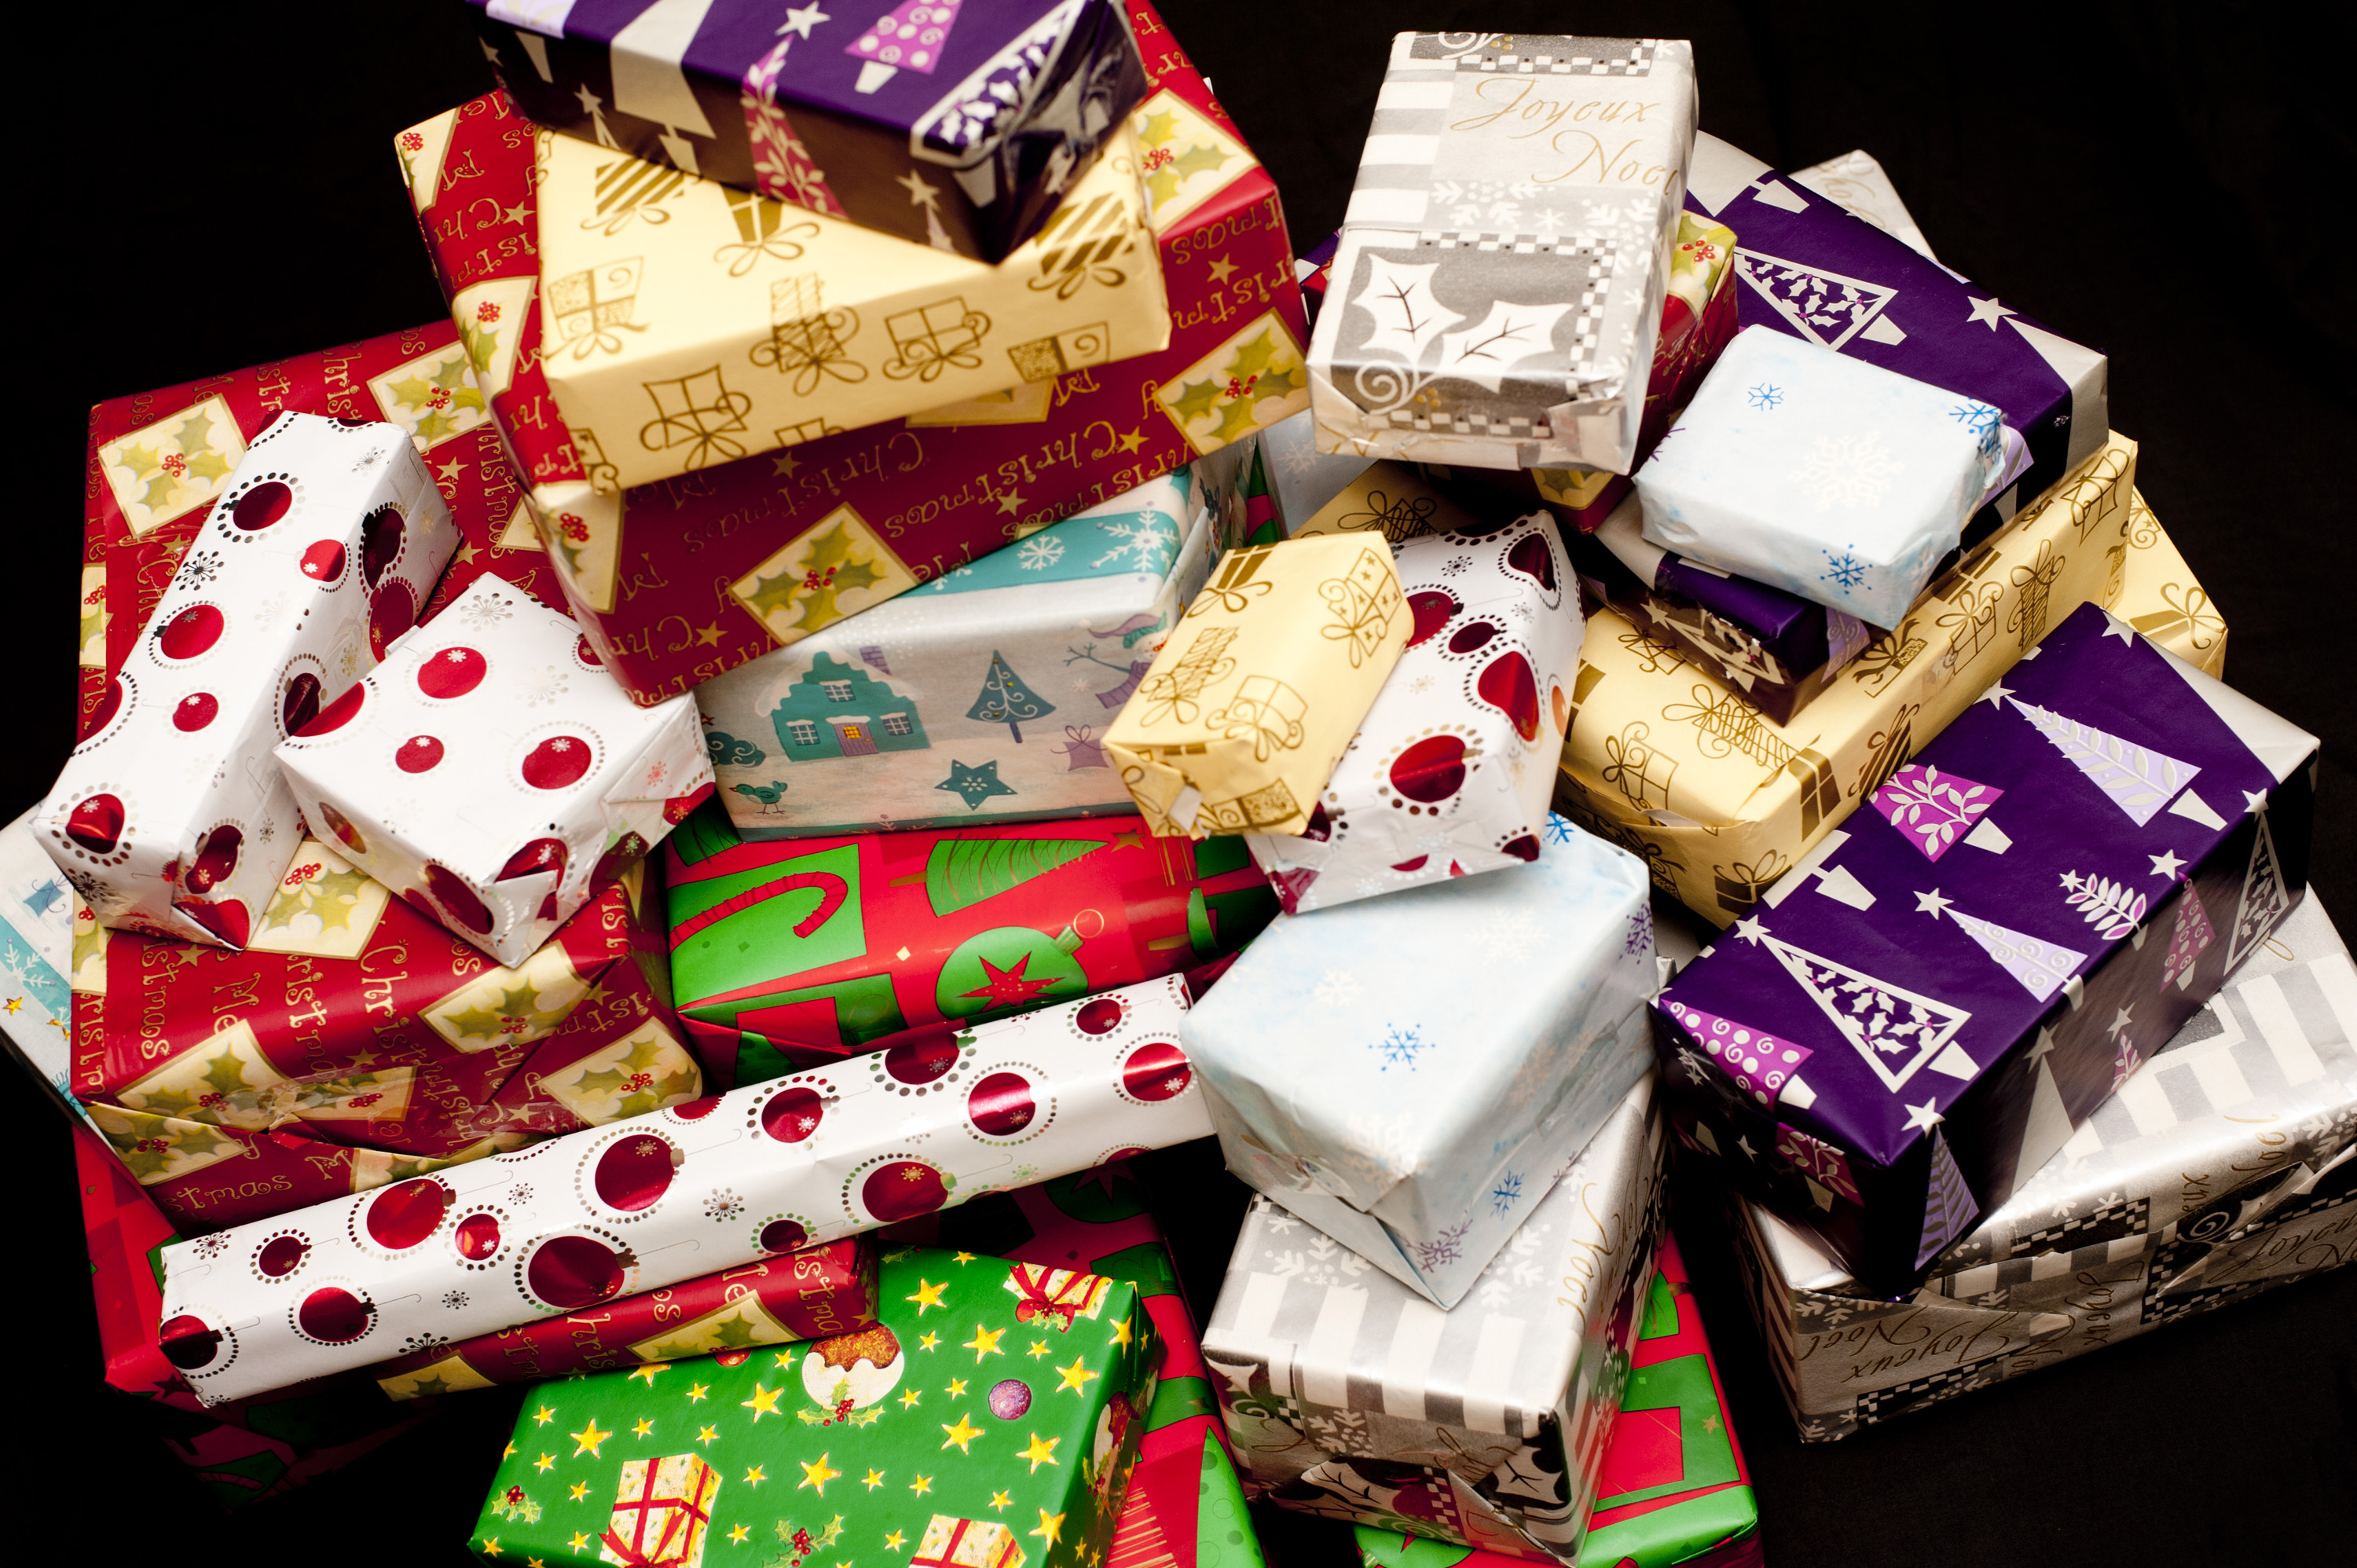 Pile of colorful gift wrapped Christmas gifts of assorted shapes and sizes in brightly colored patterned paper